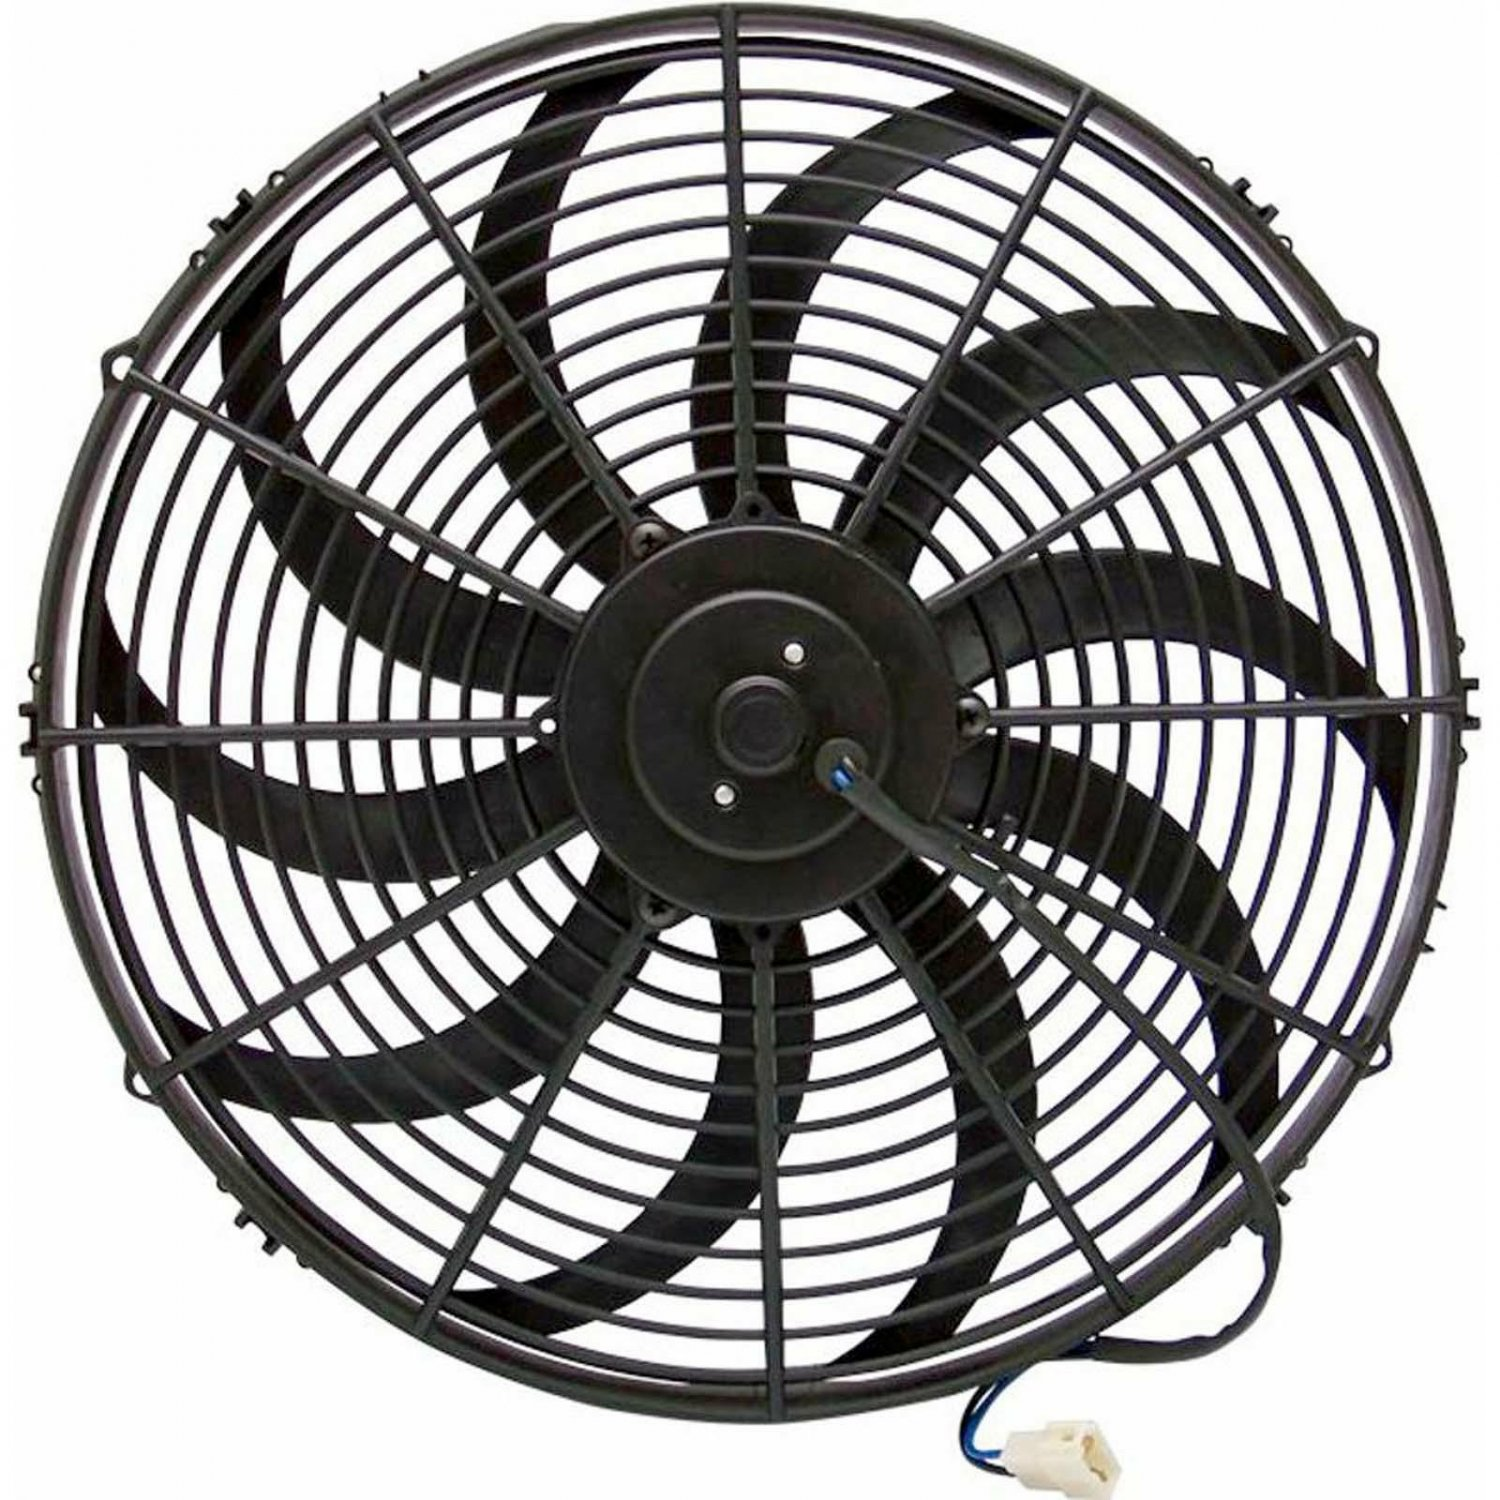 Electric Radiator Cooling Fans 1600 · 1600 #756D56